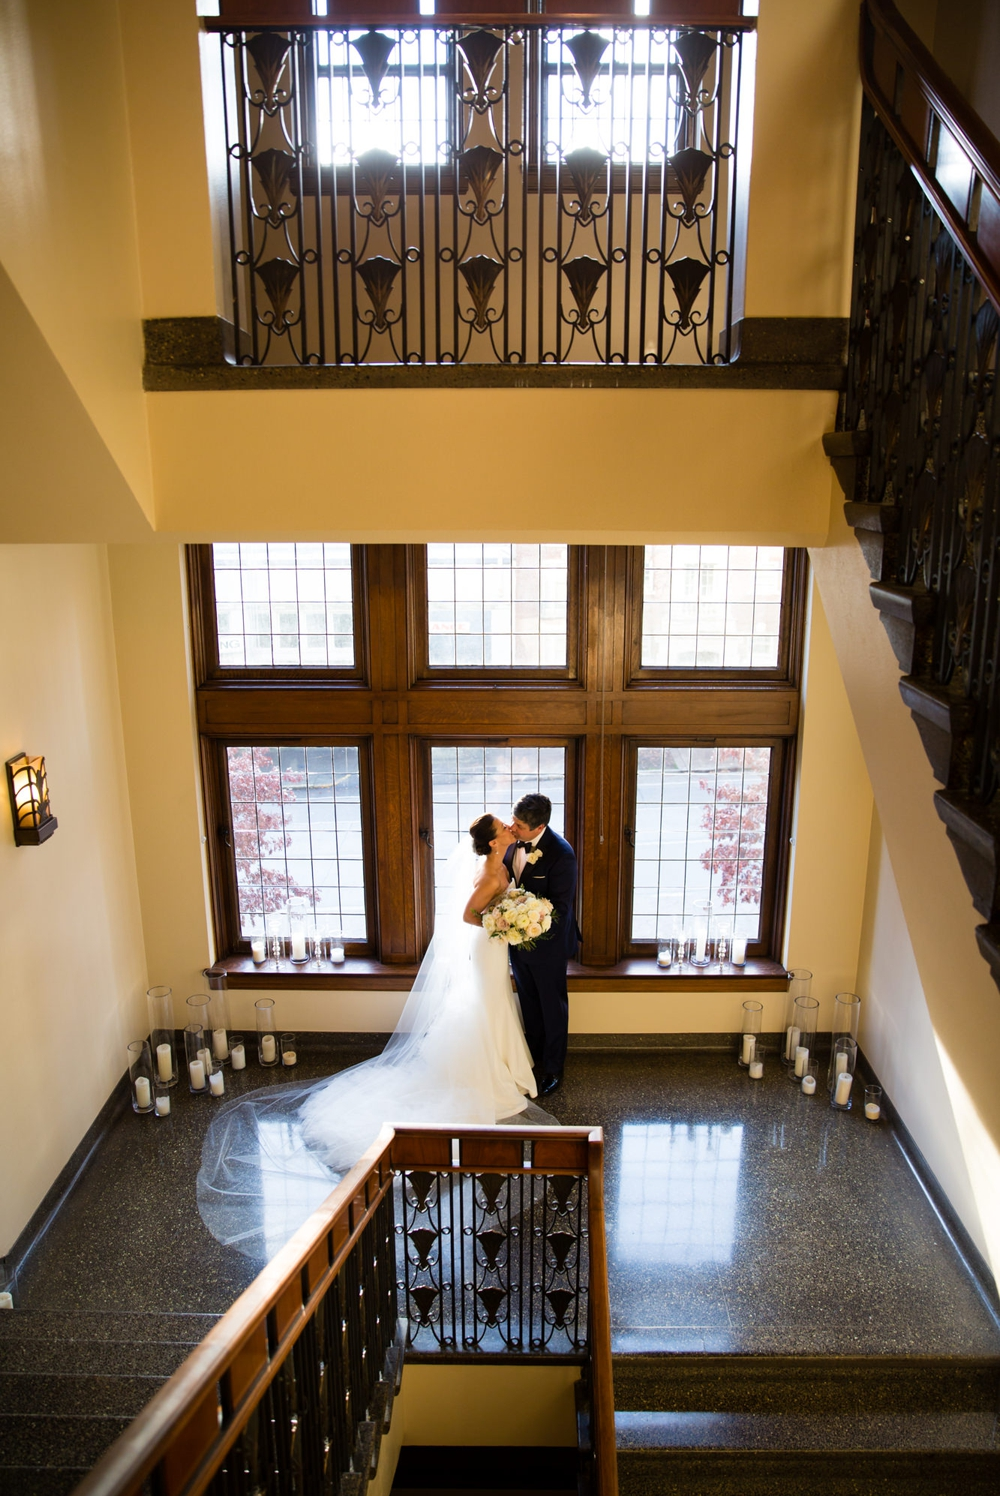 bride-and-groom-kiss-in-stairwell